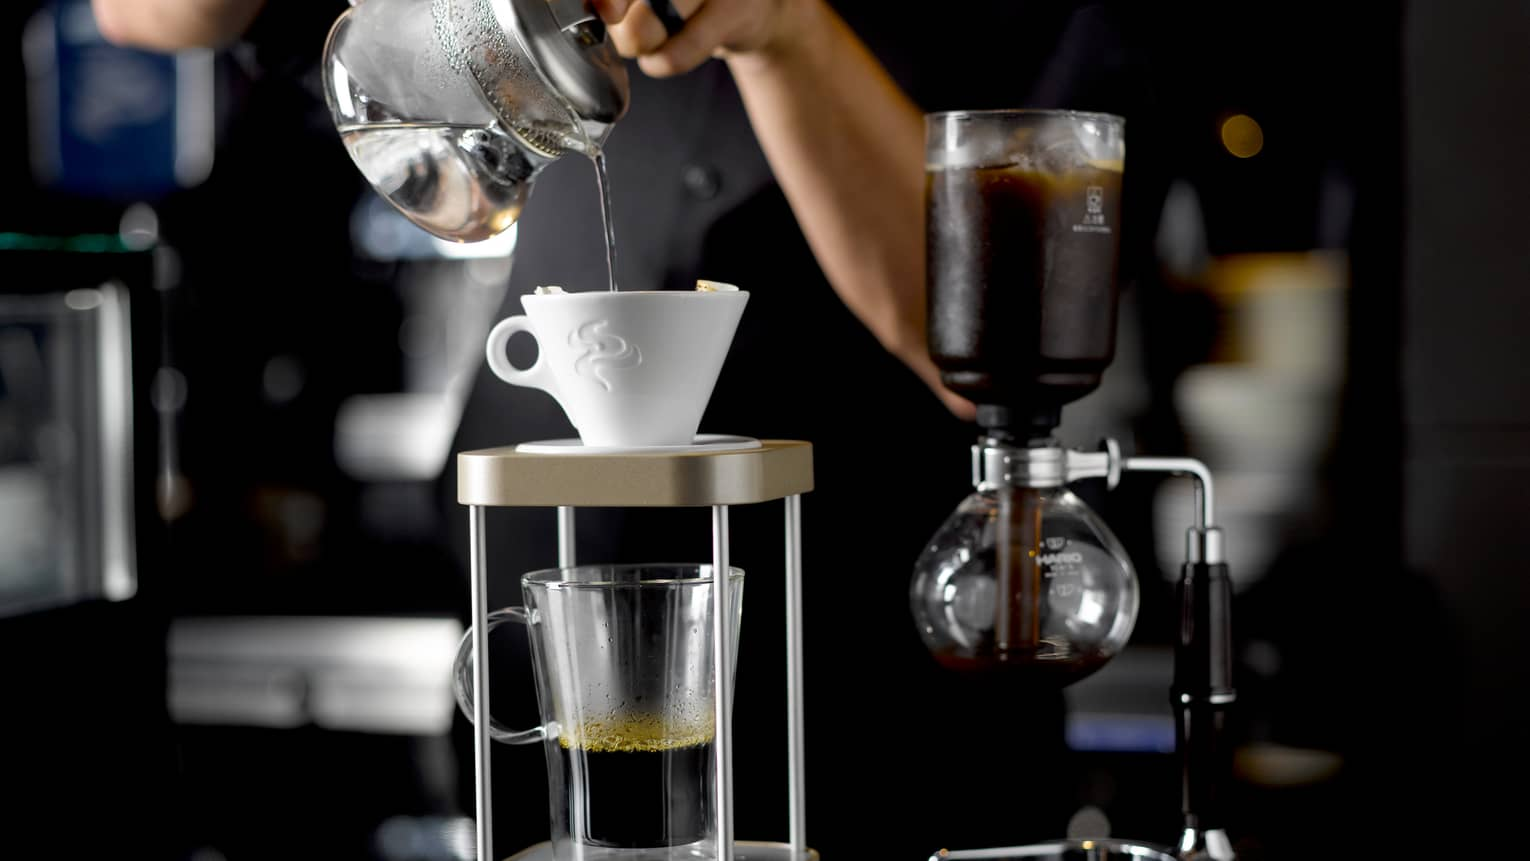 Server pouring hot water into white ceramic coffee filter above glass mug